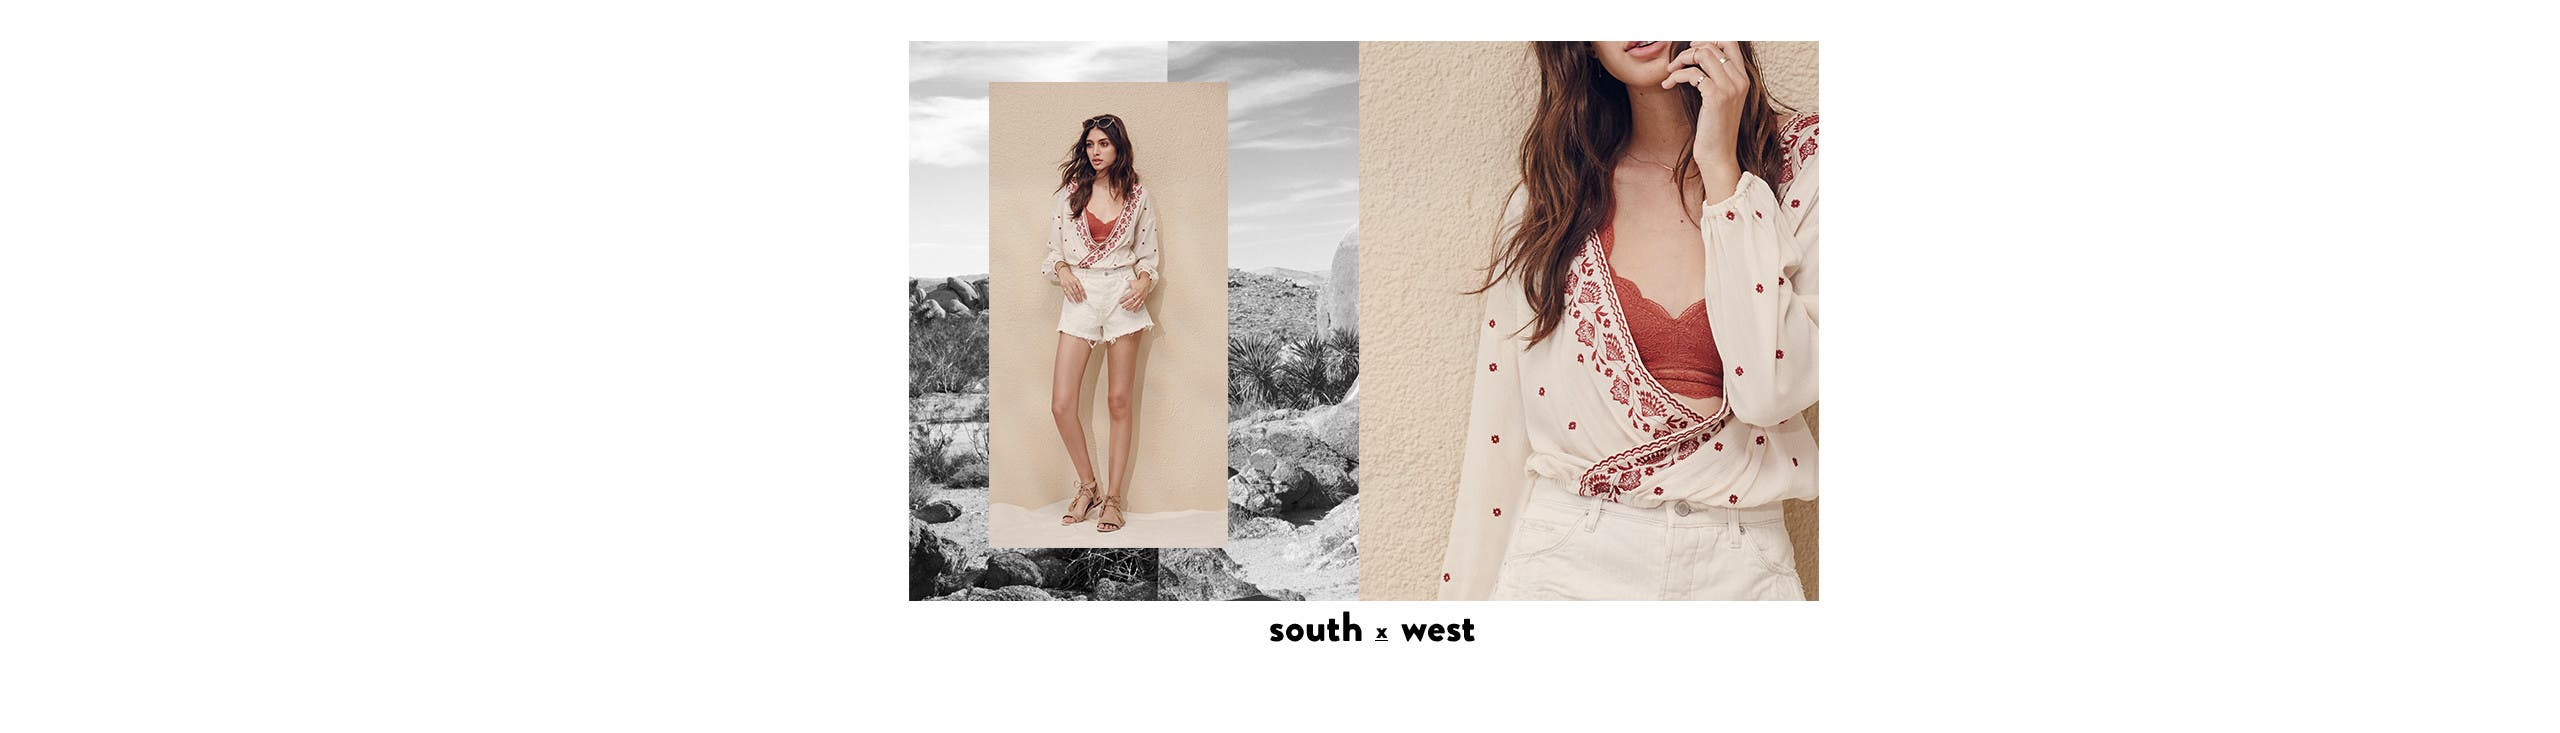 South x West: boho trend clothing and more.